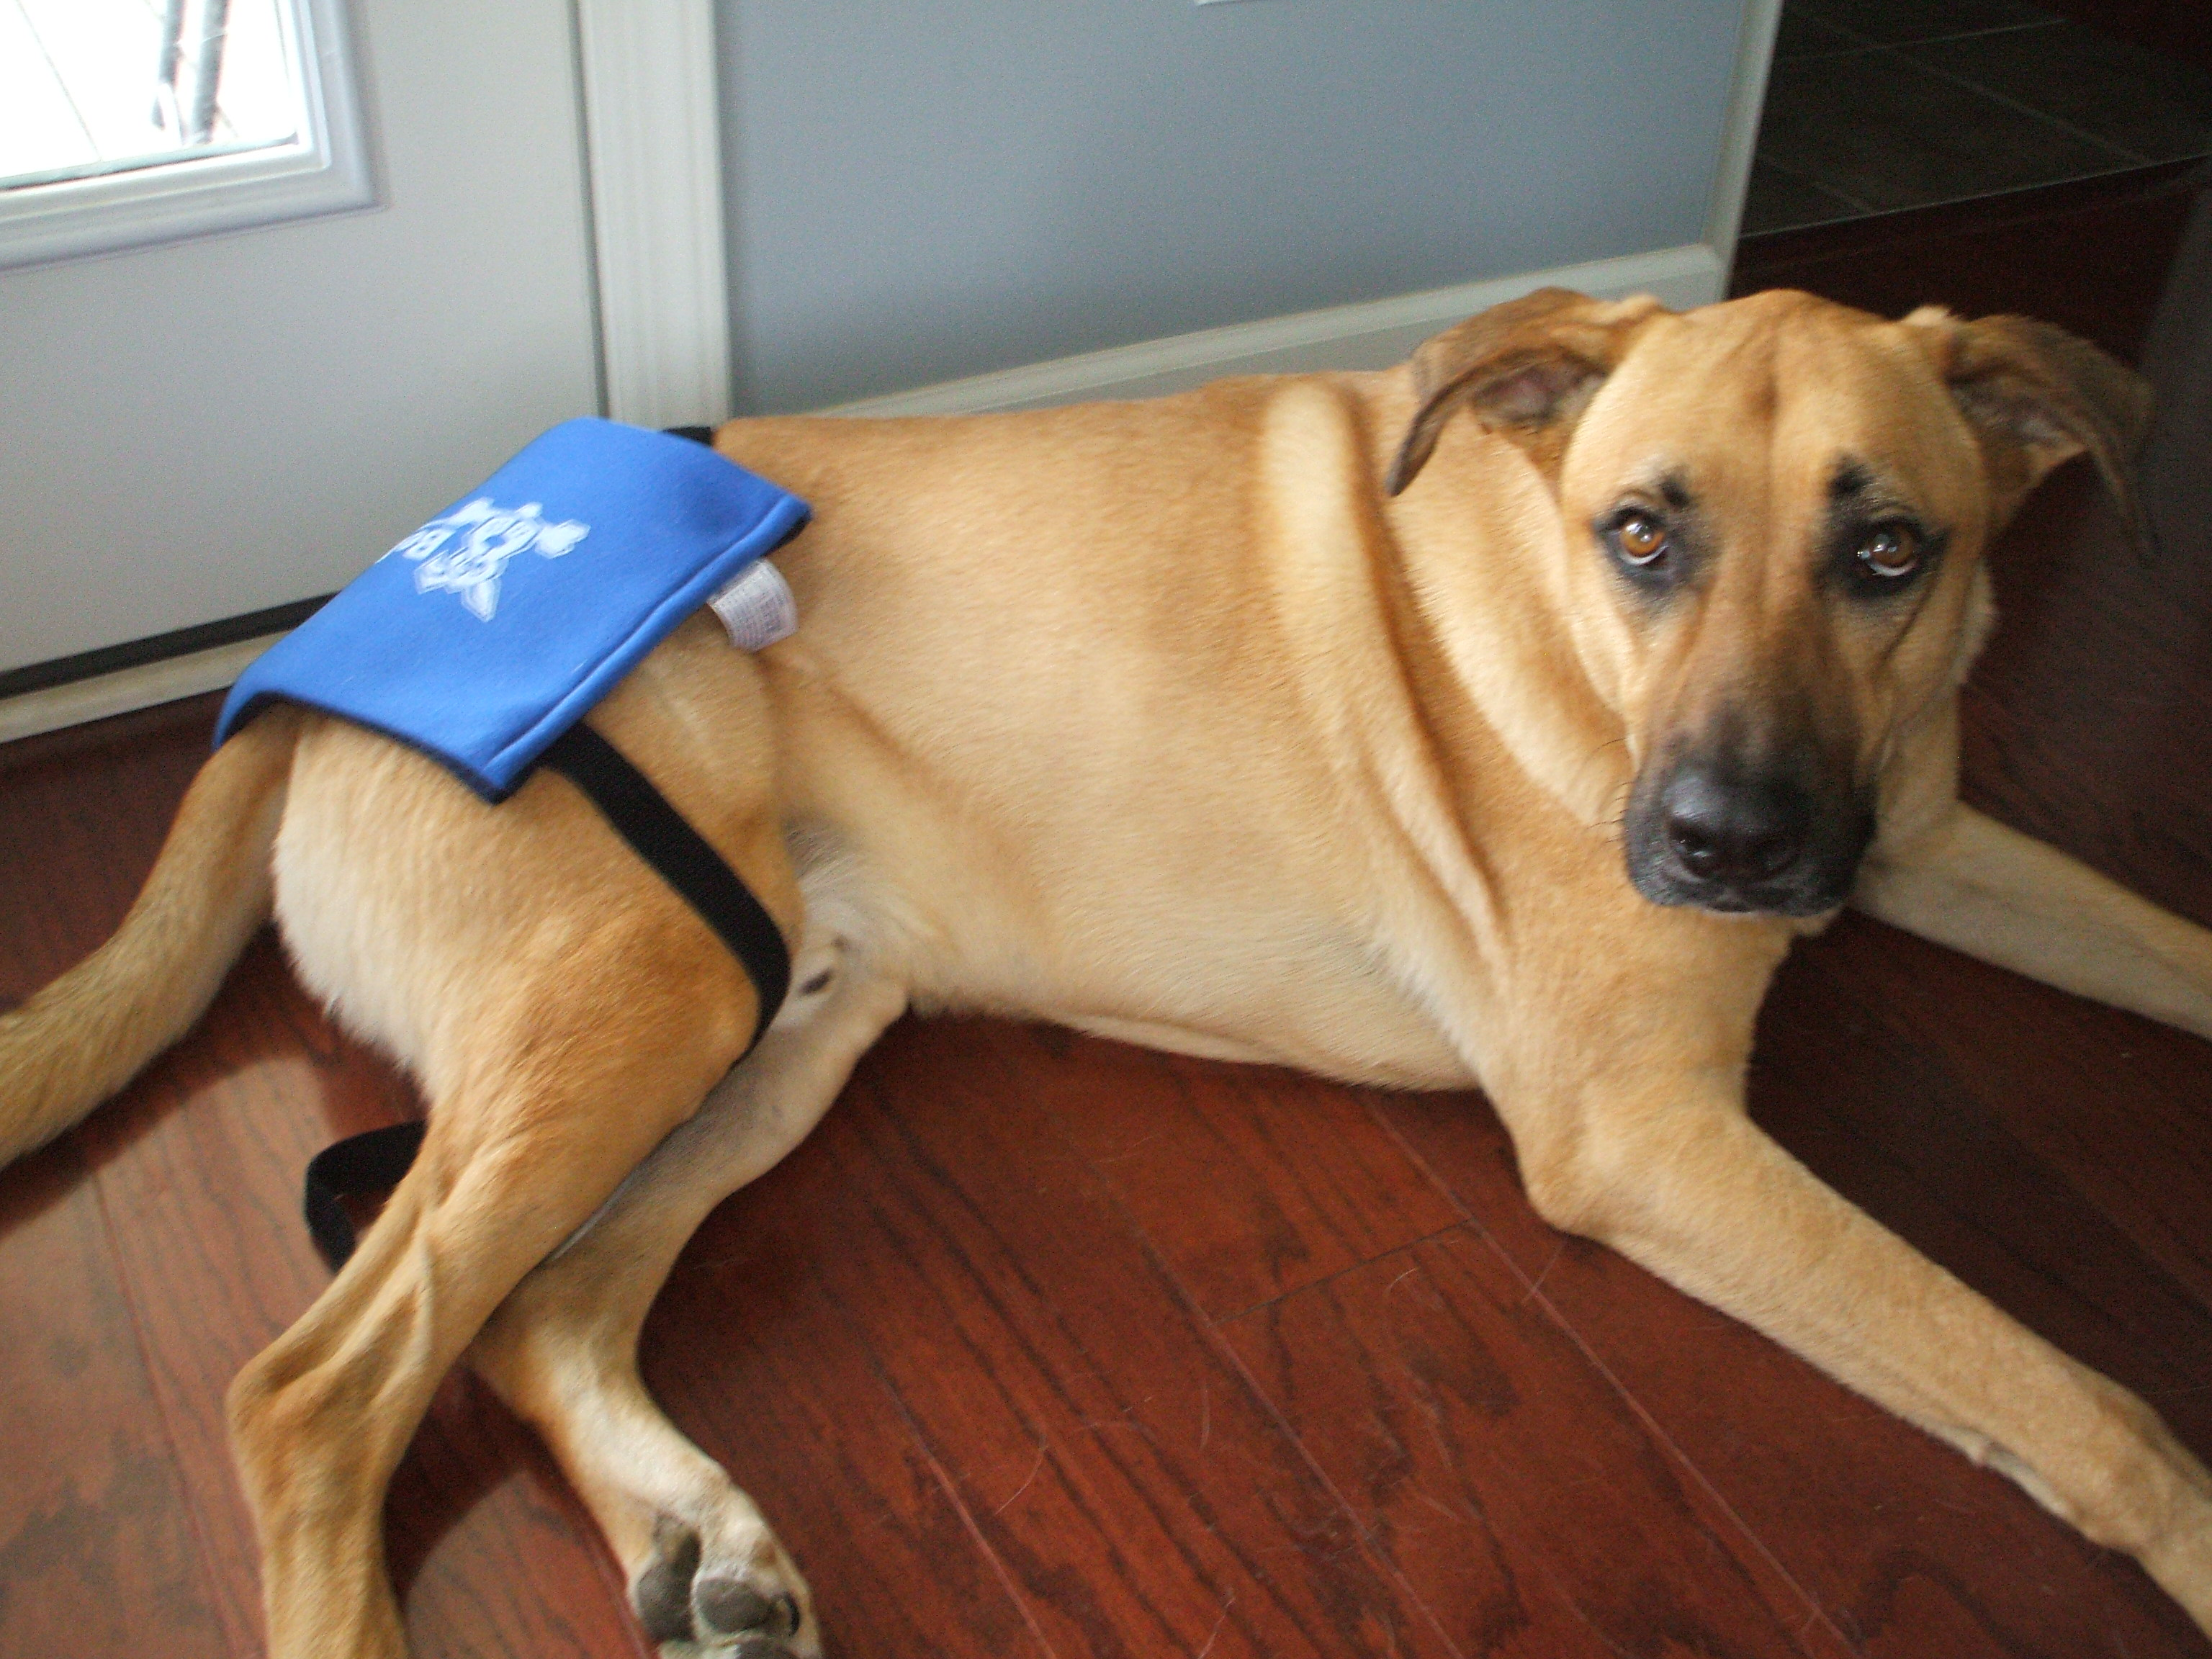 What Can I Give My Dog For Hip Dysplasia Pain